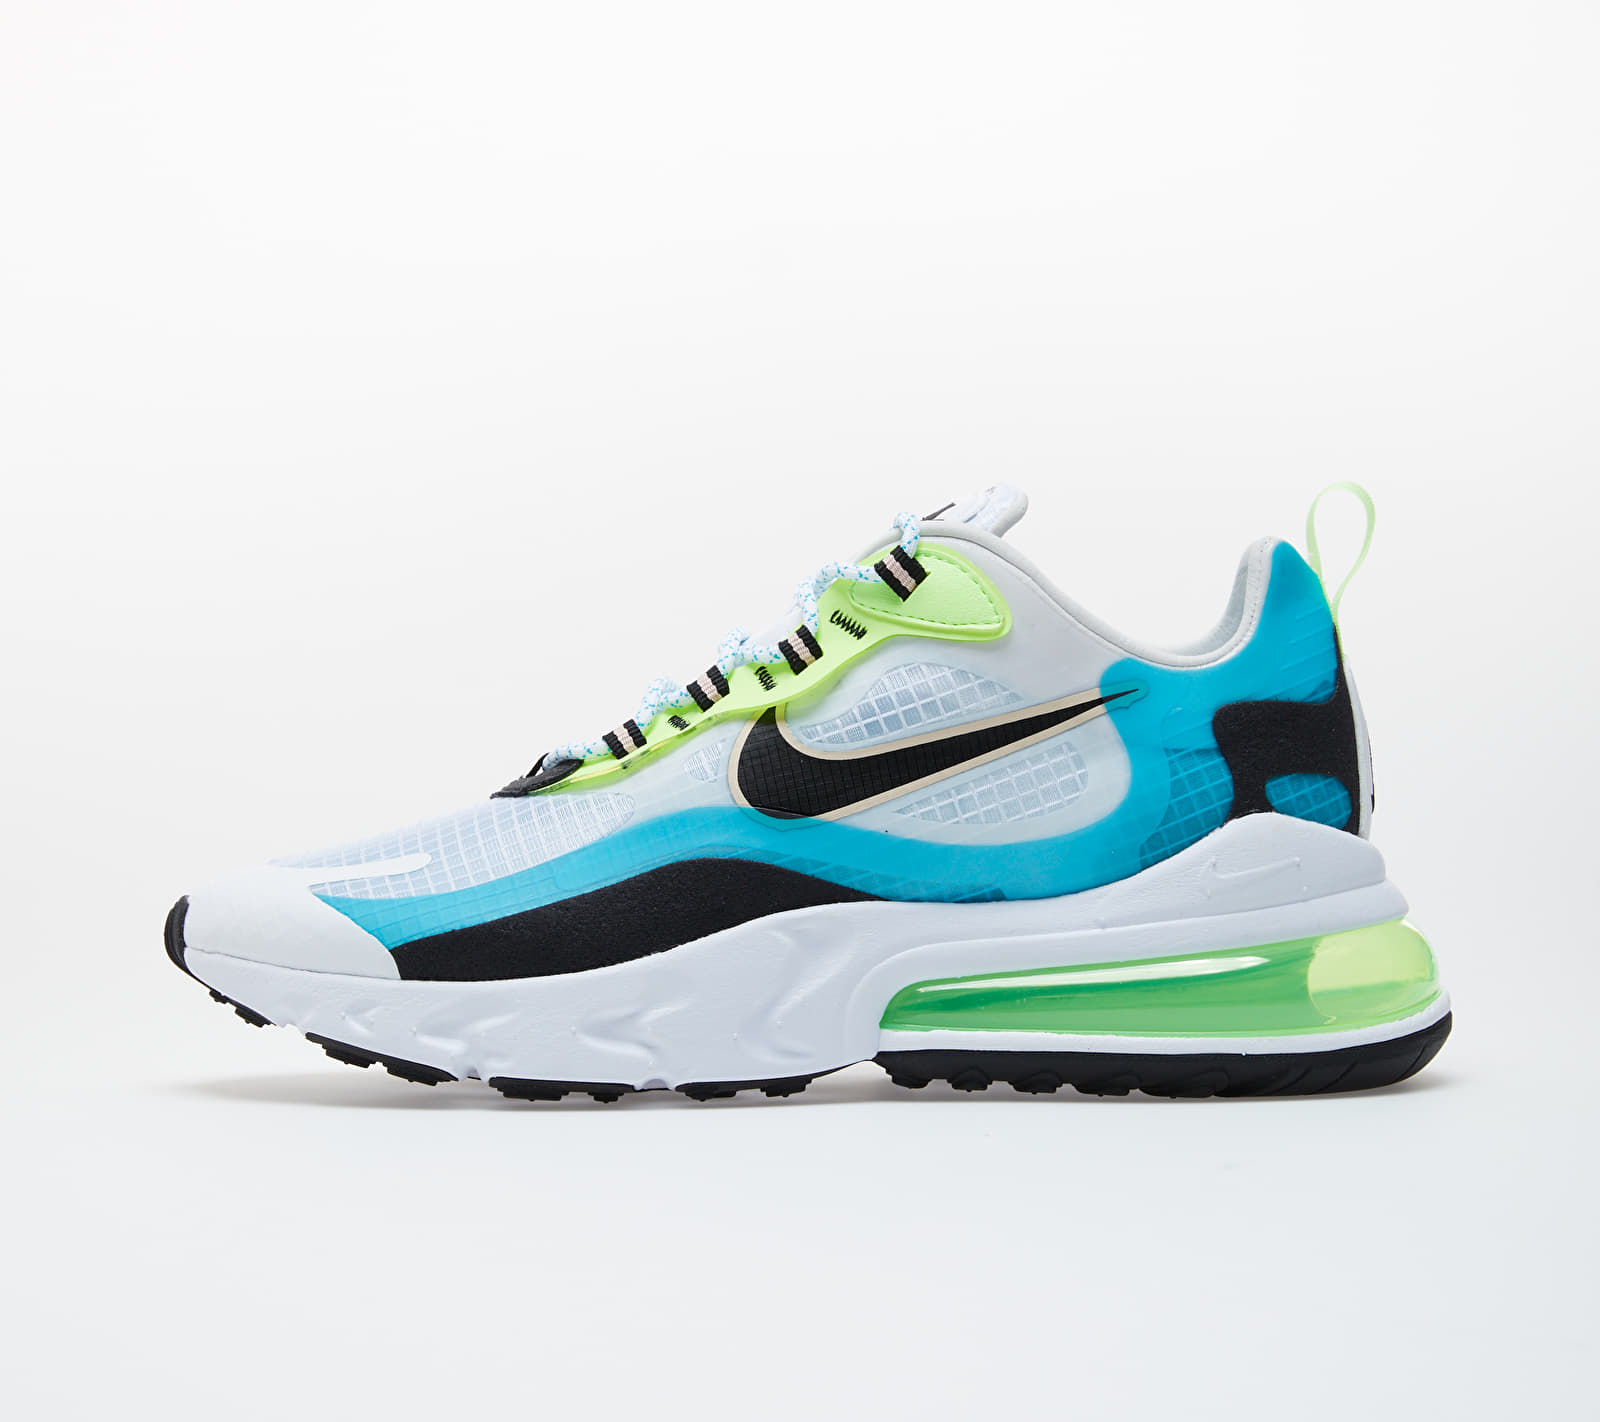 Nike Air Max 270 React SE Oracle Aqua/ Black-Ghost Green CT1265-300